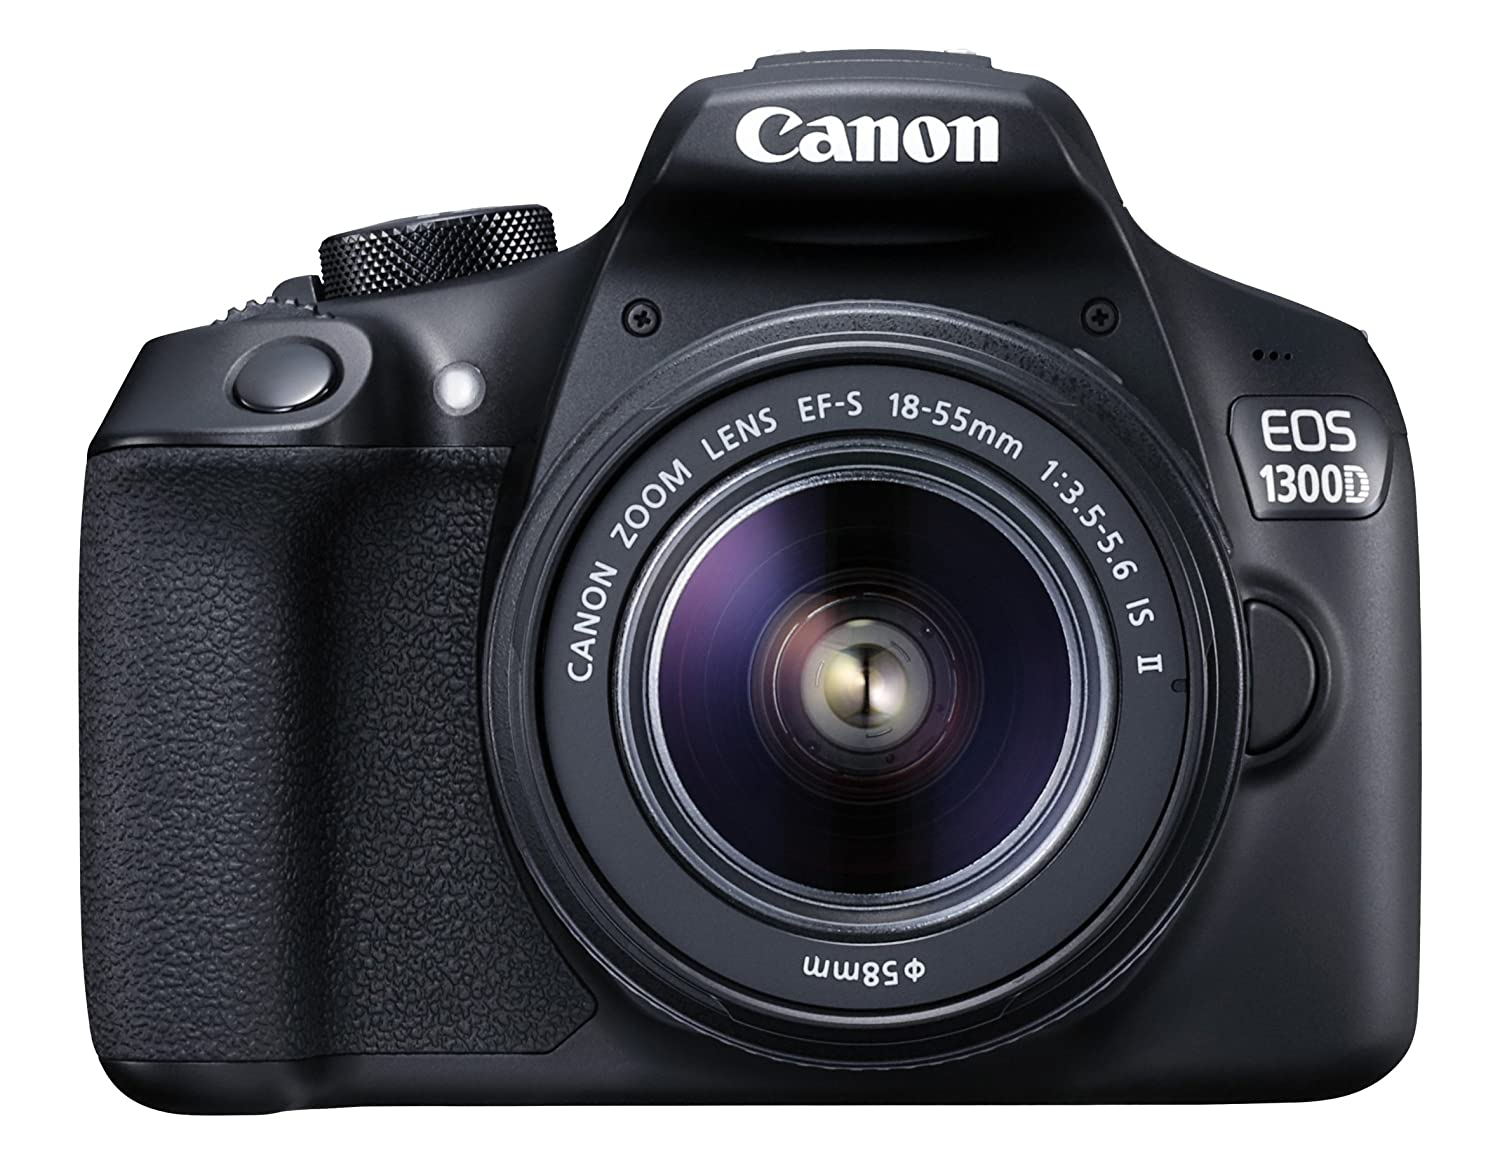 Camera Semi Dslr Cameras canon cameras buy online at low prices in india eos 1300d 18mp digital slr camera black with 18 55 and 250mm is ii lens 16gb card carry case